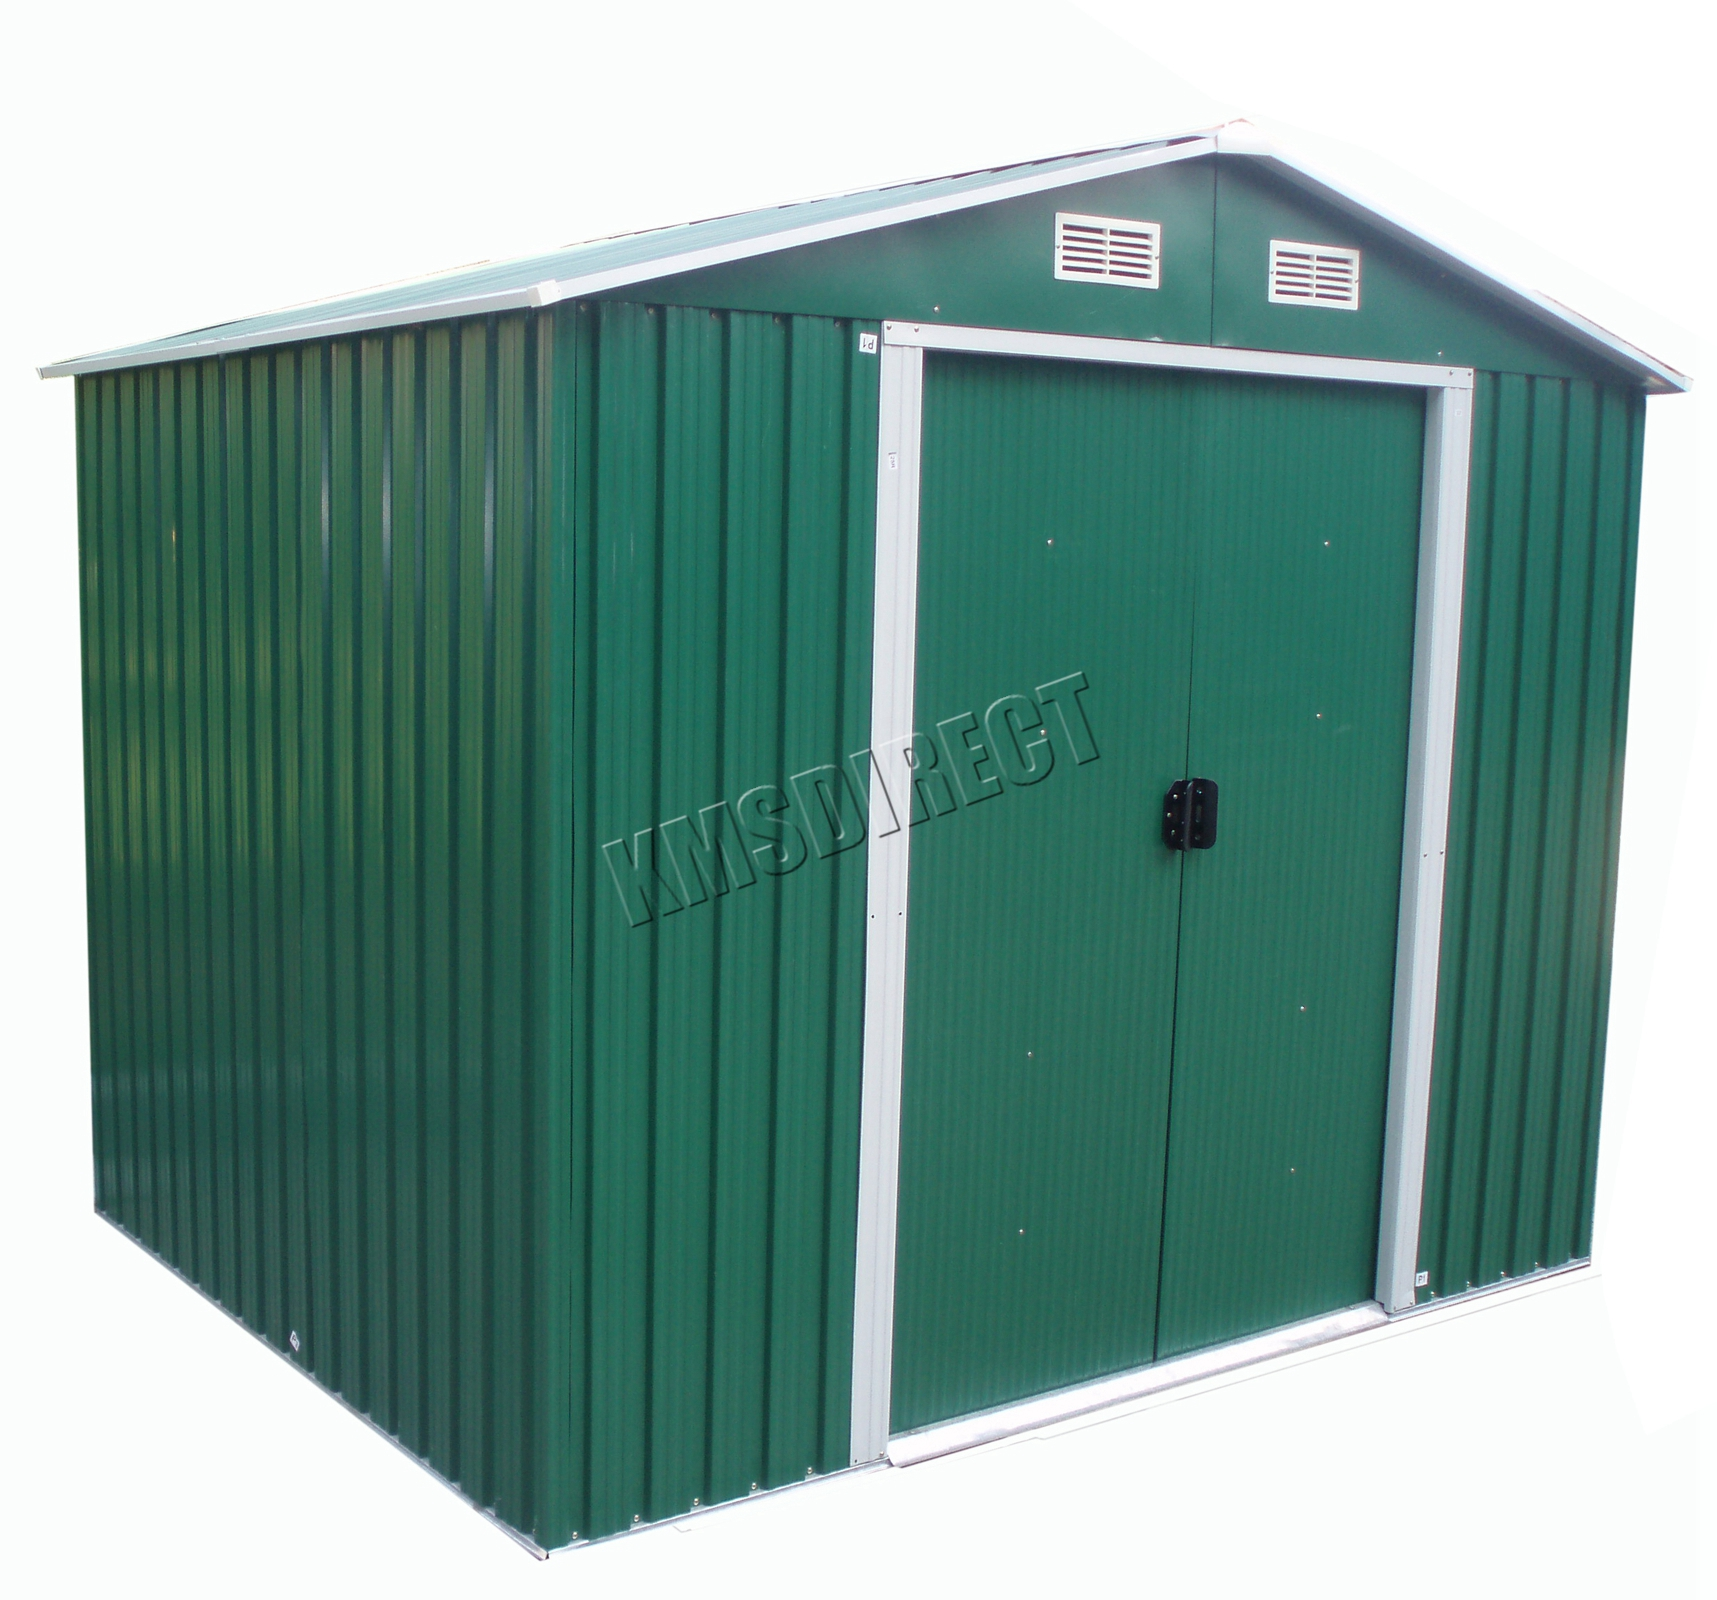 Foxhunter garden shed strong metal apex roof outdoor for Garden shed tab